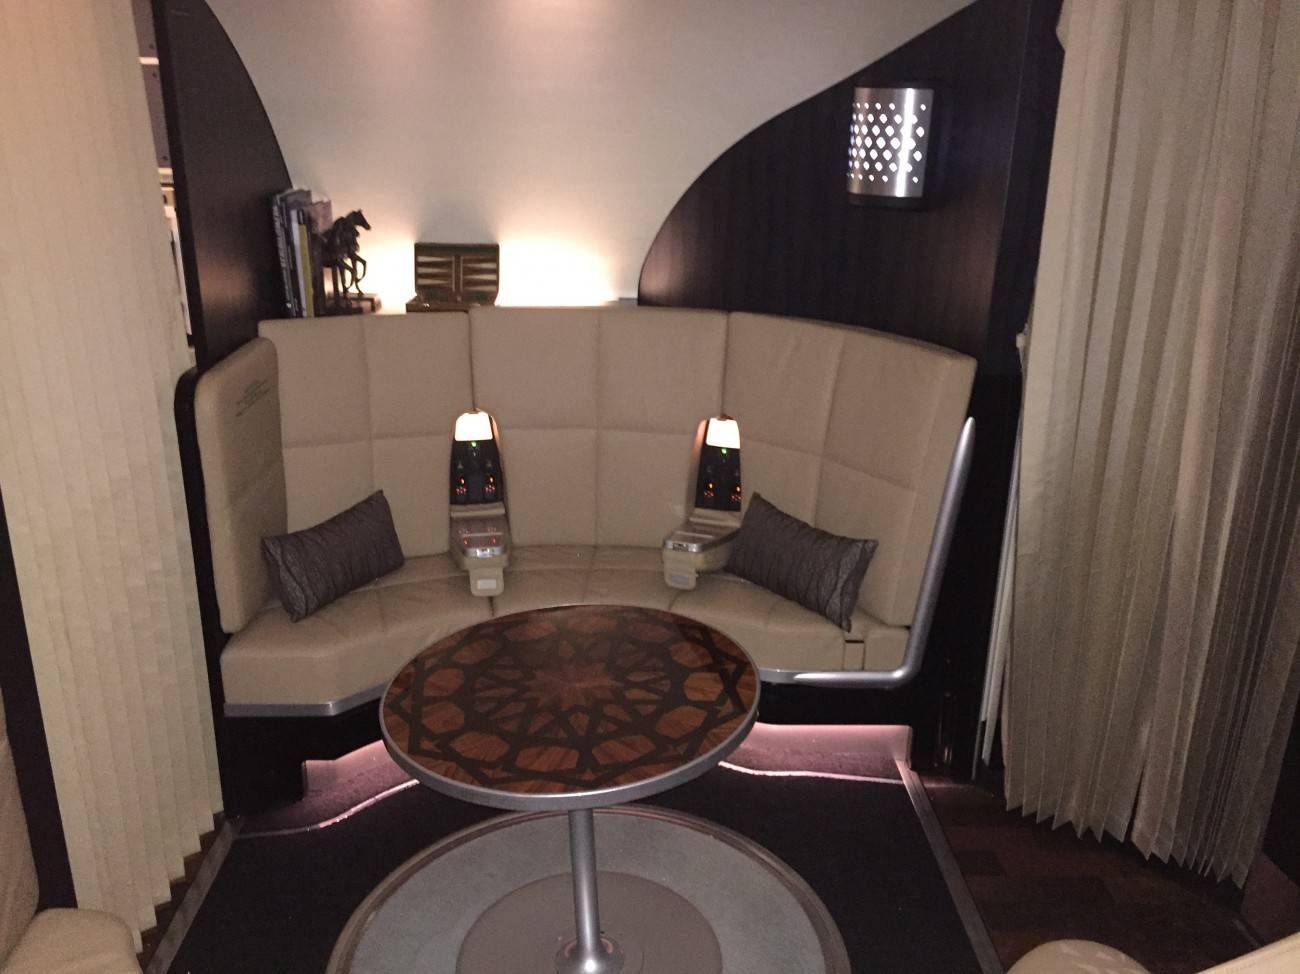 First Class Apartment A380 Etihad - PassageirodePrimeira47